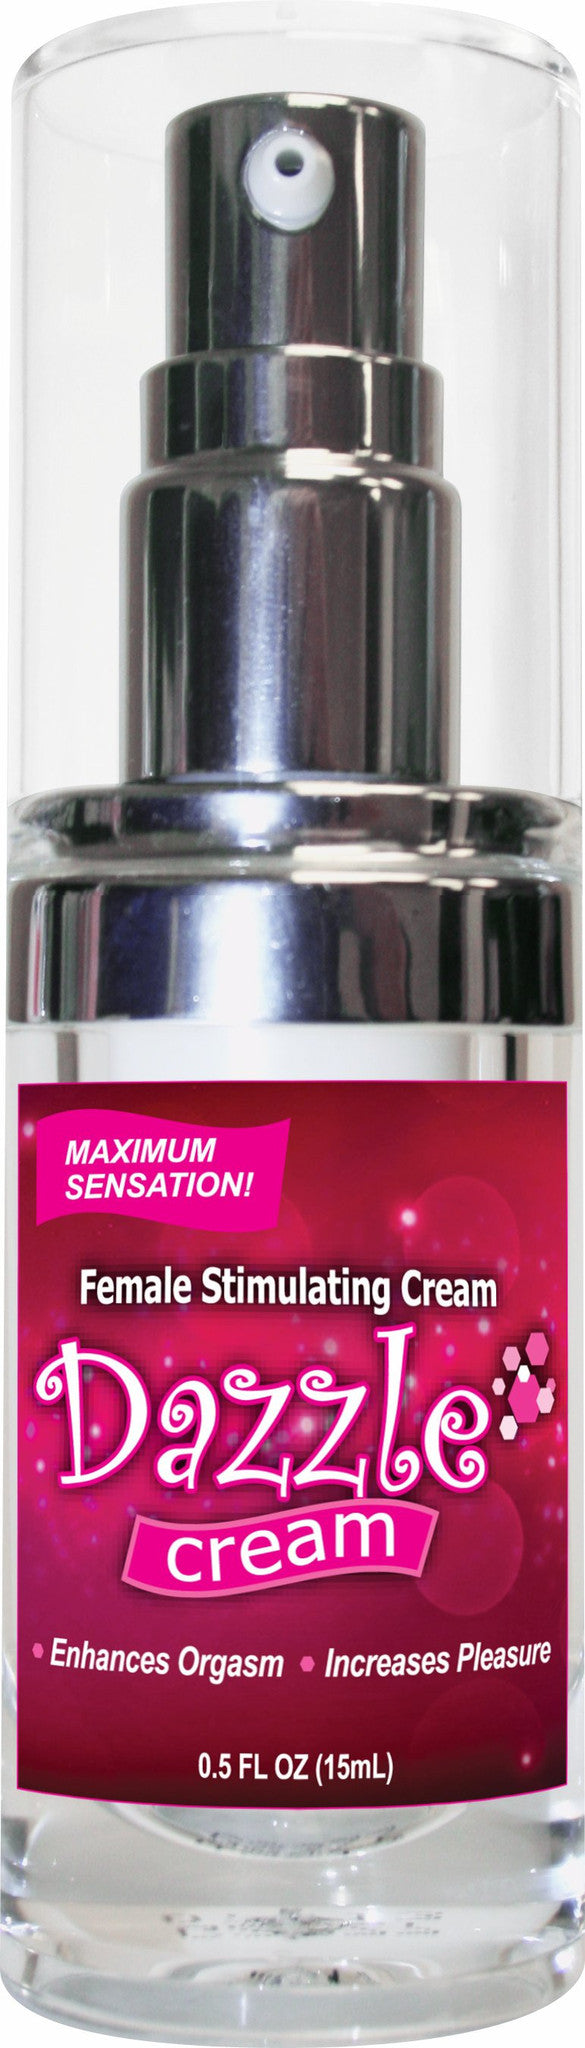 DAZZLE CREAM 0.5 OZ - Sex Toy Factory - Body Action Products